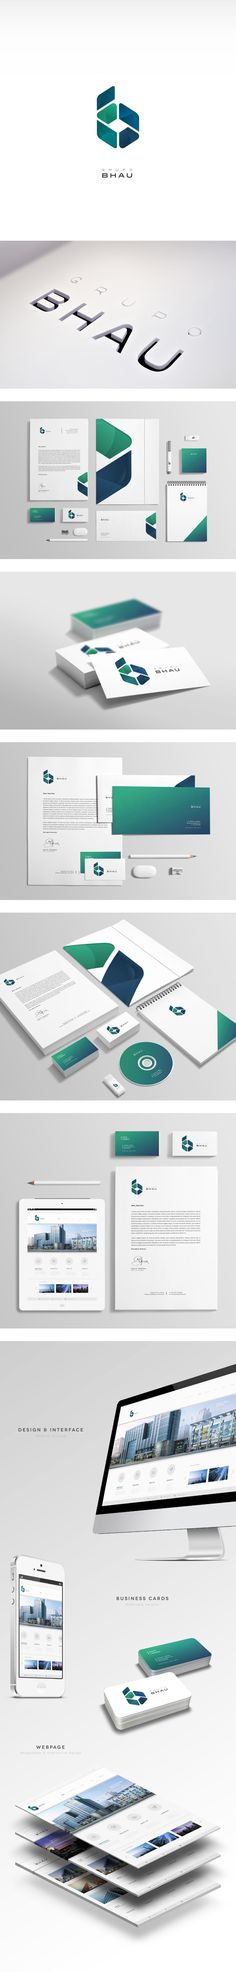 Grupo BHAU by Diego Leyva, via Behance | #stationary #corporate #design #corporatedesign #identity #branding #marketing < repinned by www.BlickeDeeler.de | Take a look at www.LogoGestaltung-Hamburg.de